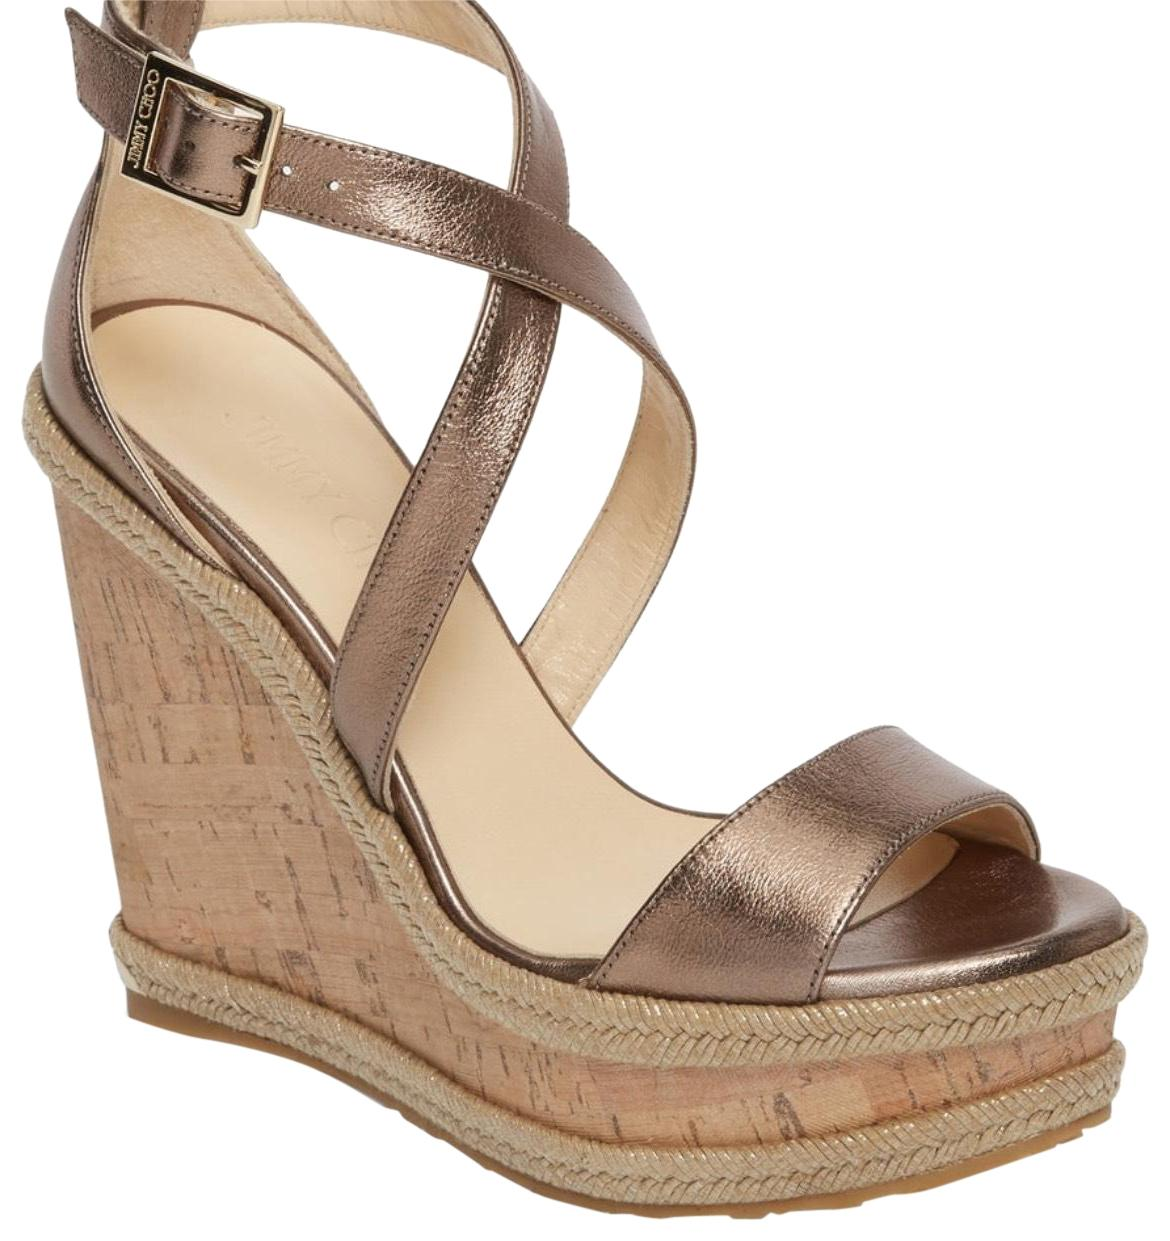 """Jimmy Choo Metallic 4 1/2"""" (114mm) Heel; 1 1/2"""" Platform 38.5) Adjustable Strap with Buckle Closure Leather Upper and Lining/Synthetic Wedges Size US 7.5 Regular (M, B)"""